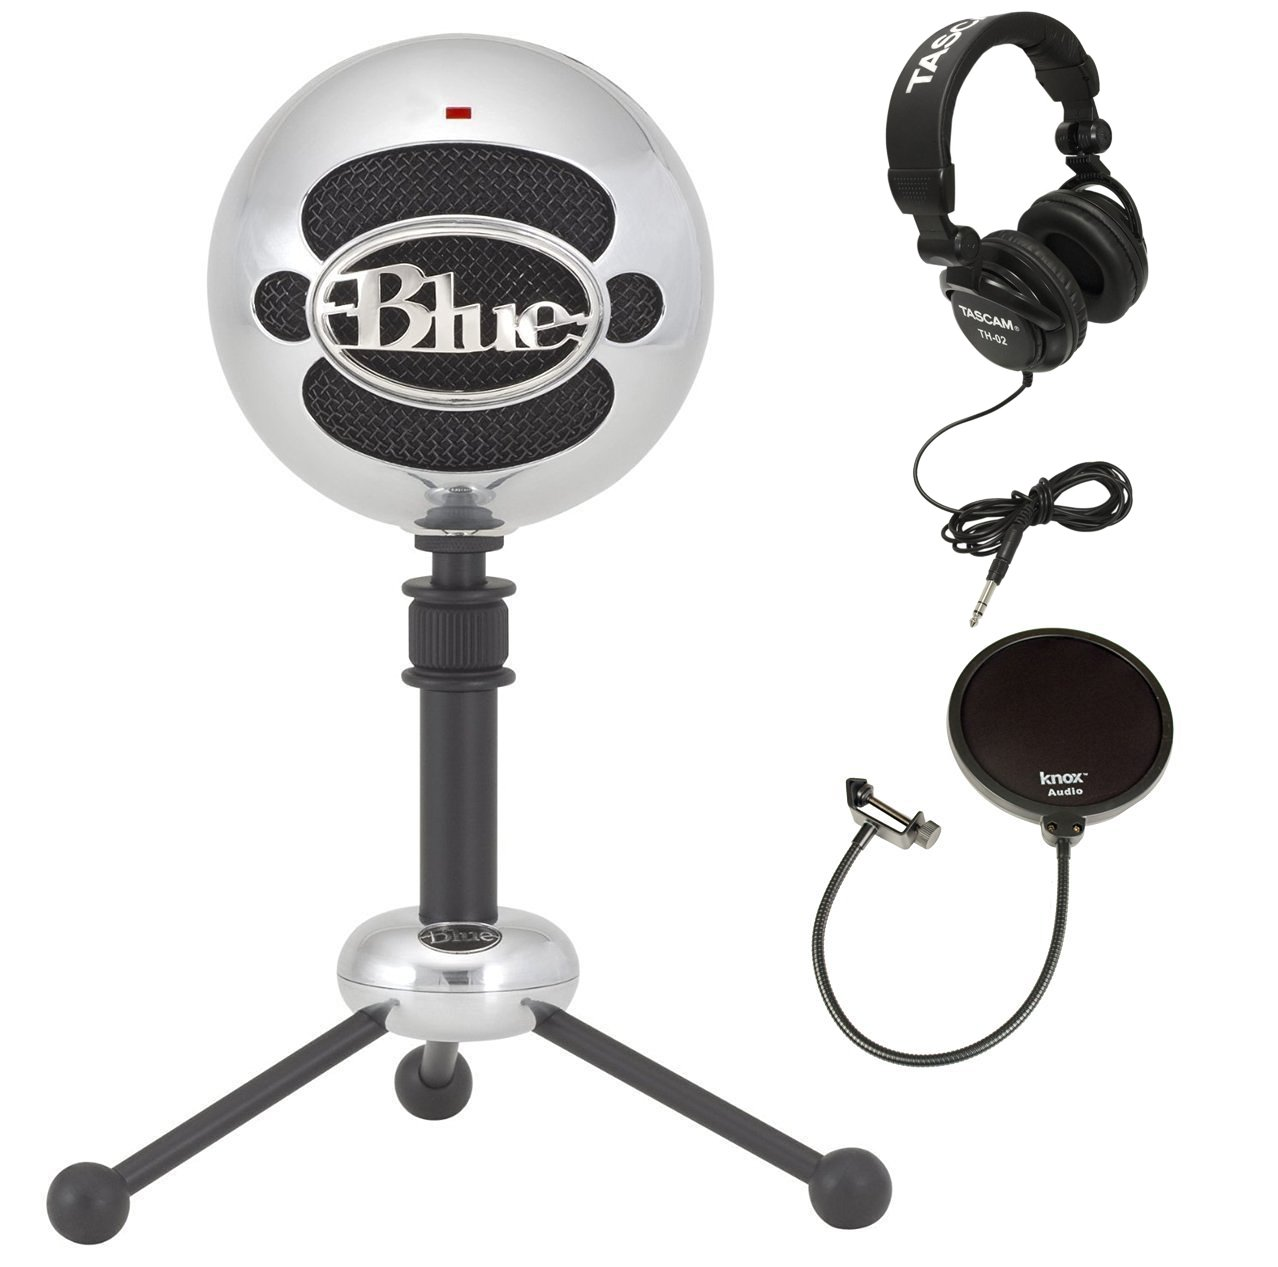 Blue Microphones Snowball Plug-and-Play USB Microphone in Brushed Aluminum with Studio Headphones and Microphone Pop Filter SNOWBALL-BA